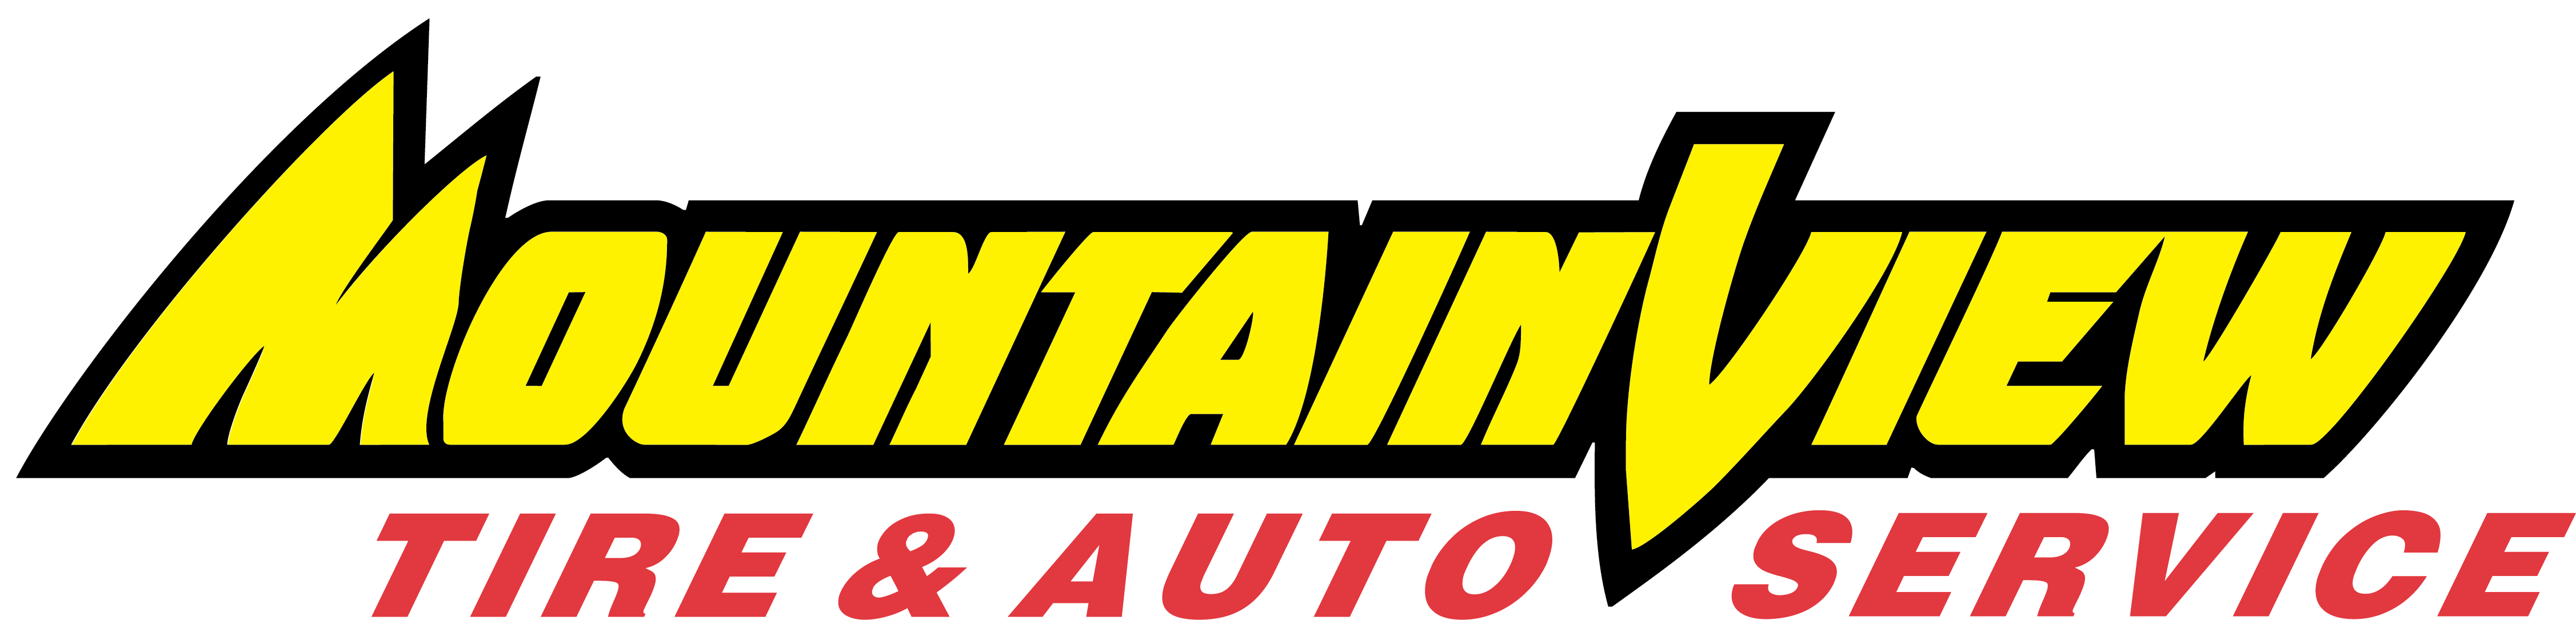 Mountain View Tire & Auto Service